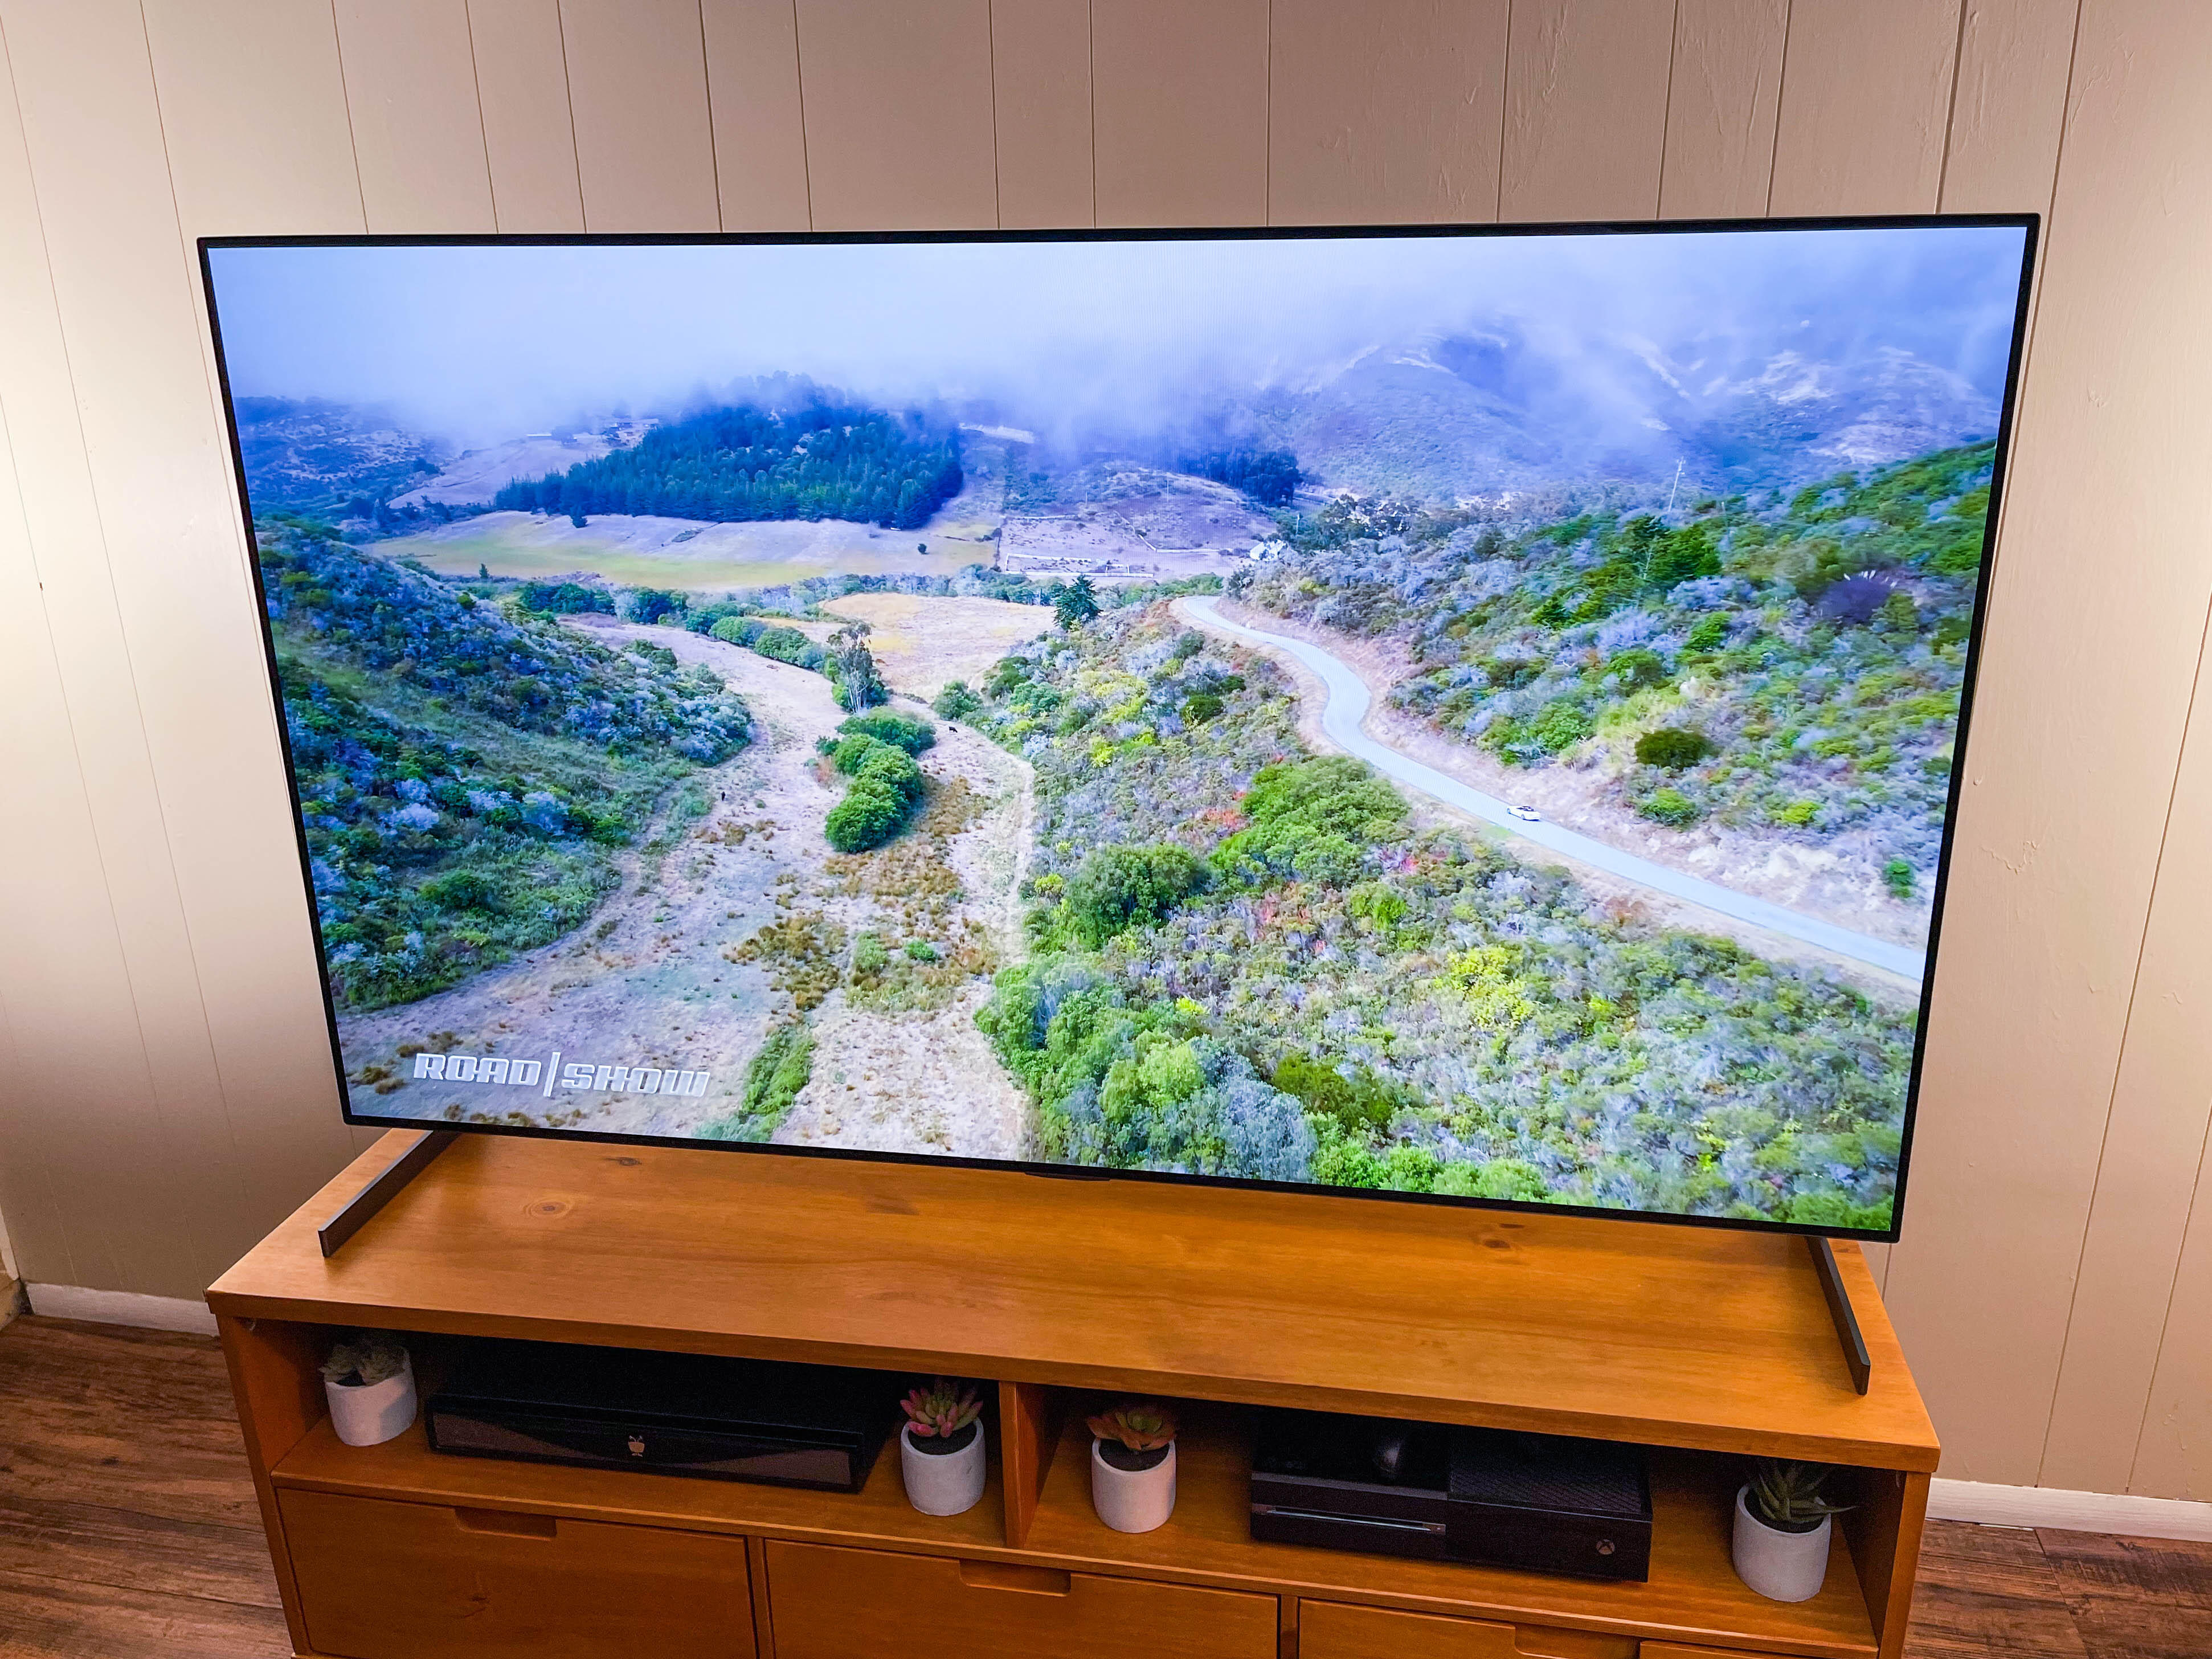 LG G1 OLED TV review: Sets the picture quality bar just a bit higher     - CNET